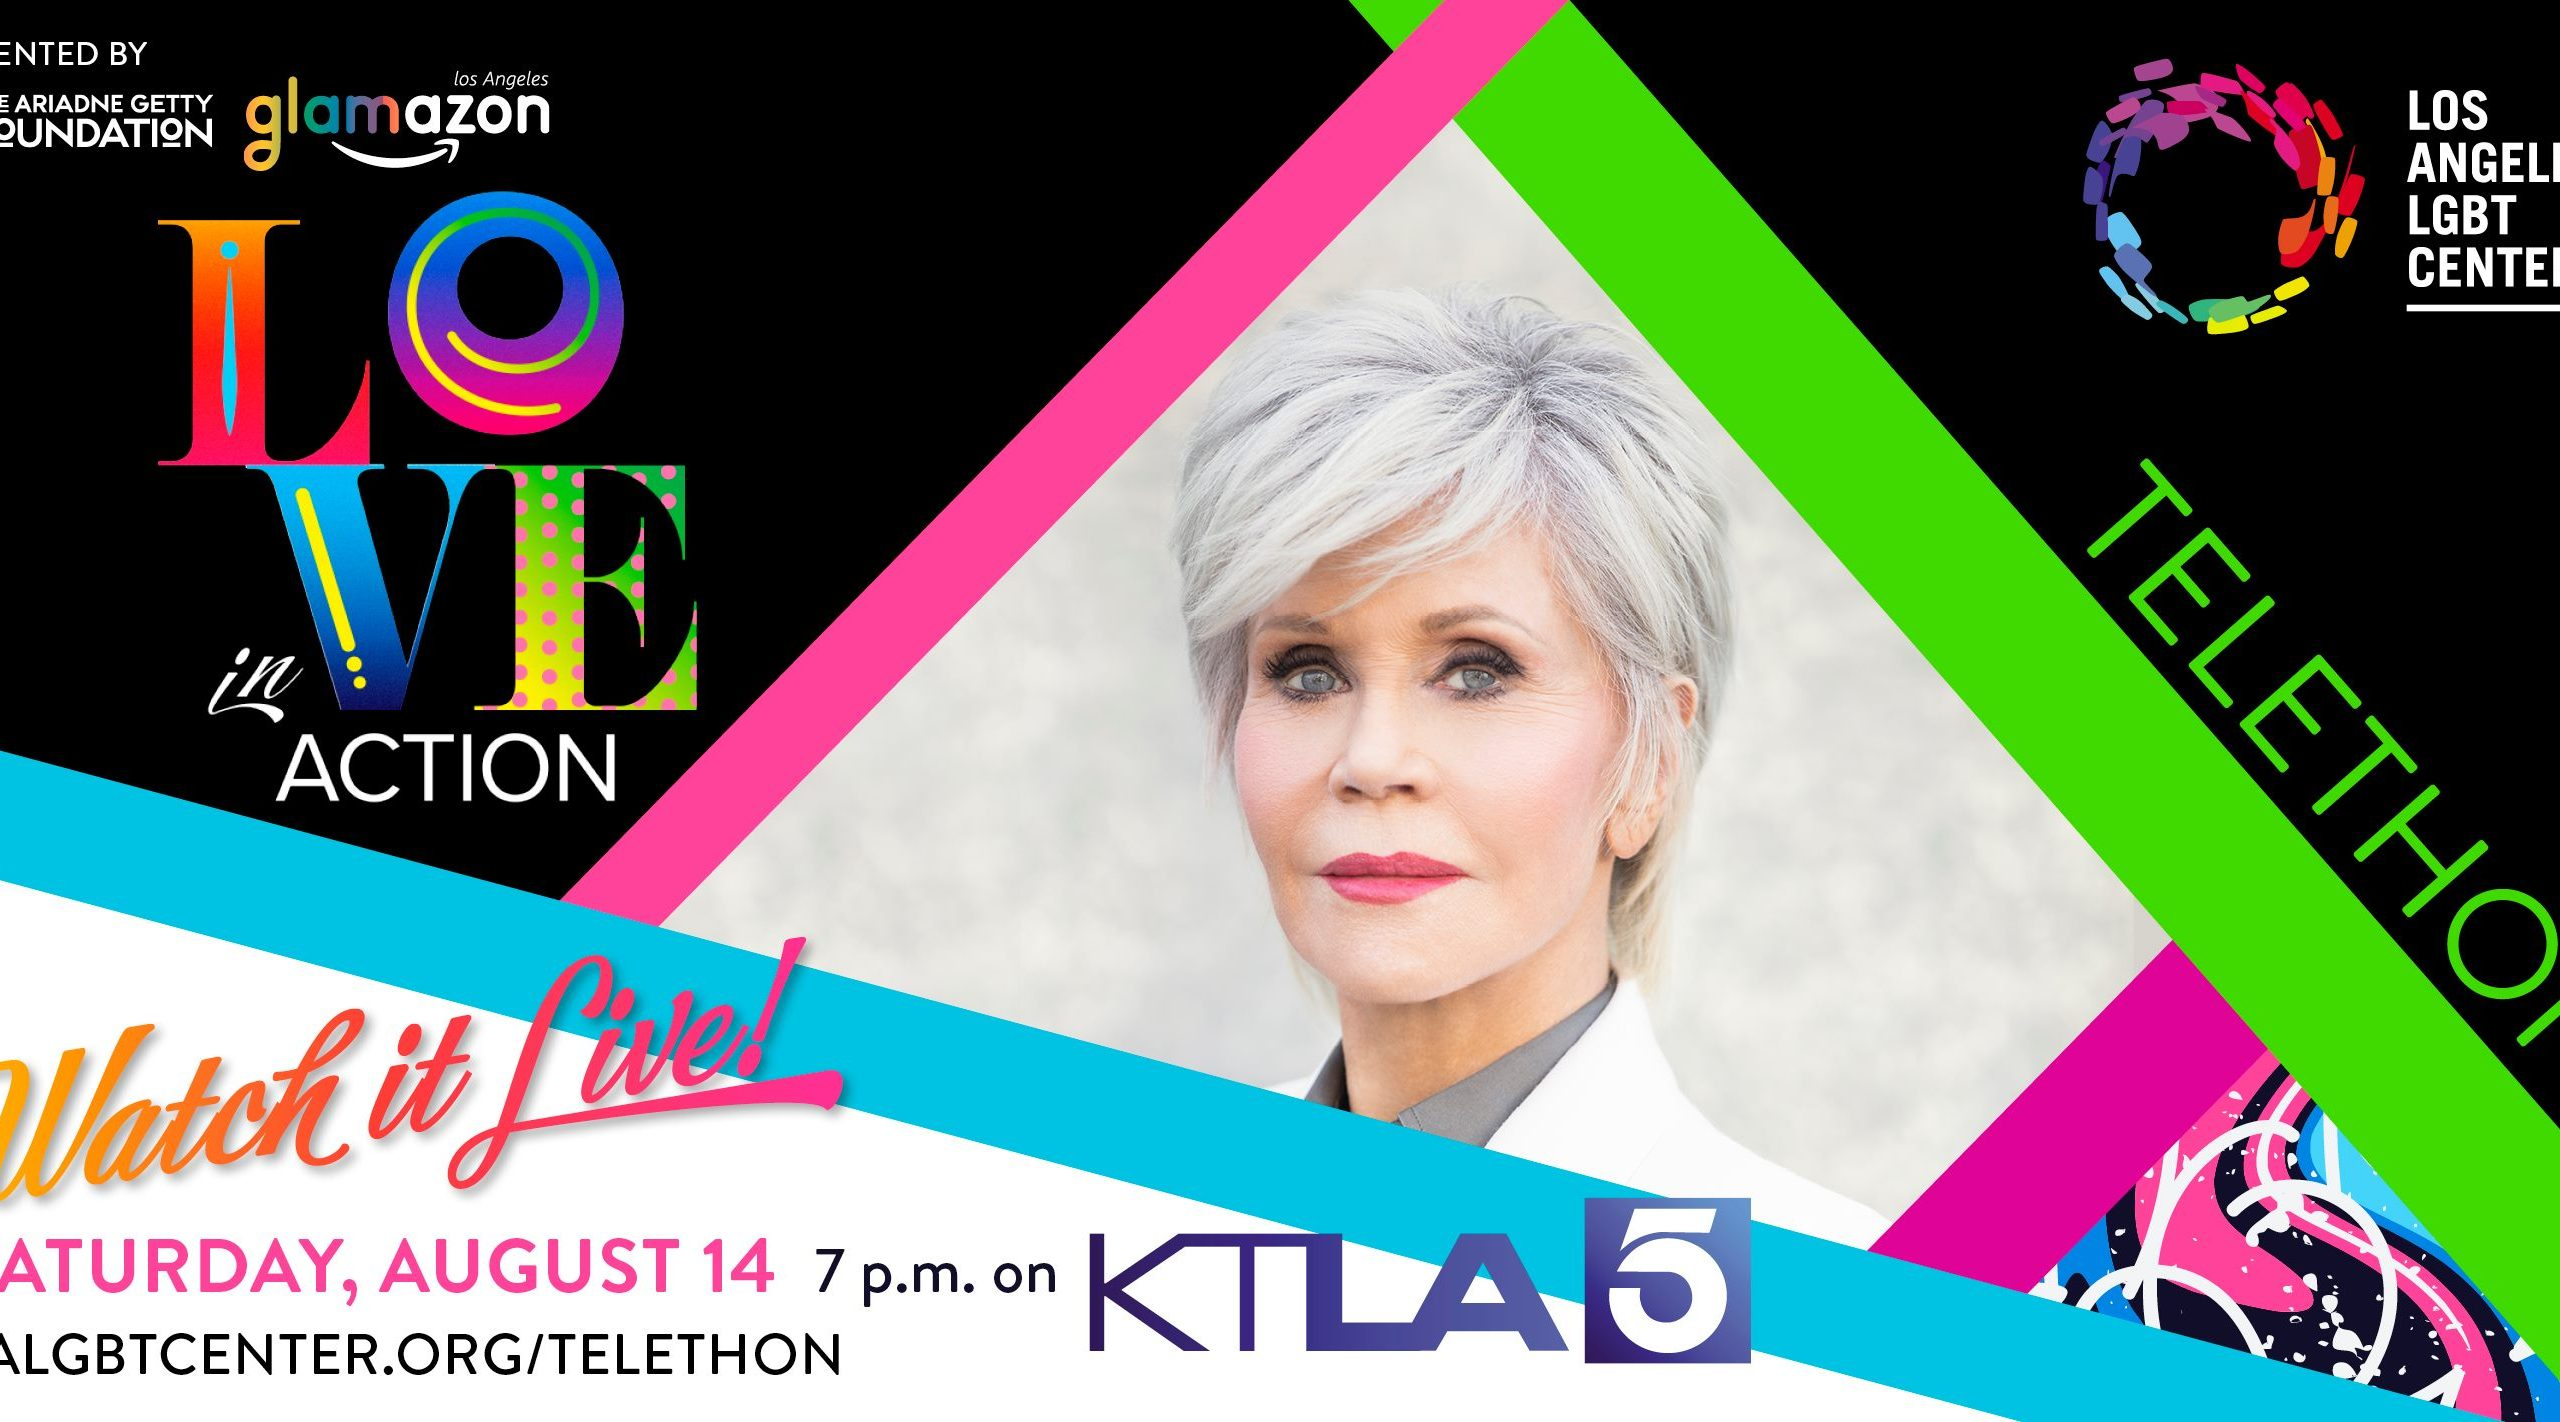 """Actress Jane Fonda in one of many celebrities slated to join the """"Love In Action"""" telethon airing Aug. 14 on KTLA Channel 5. (Los Angeles LGBT Center)"""